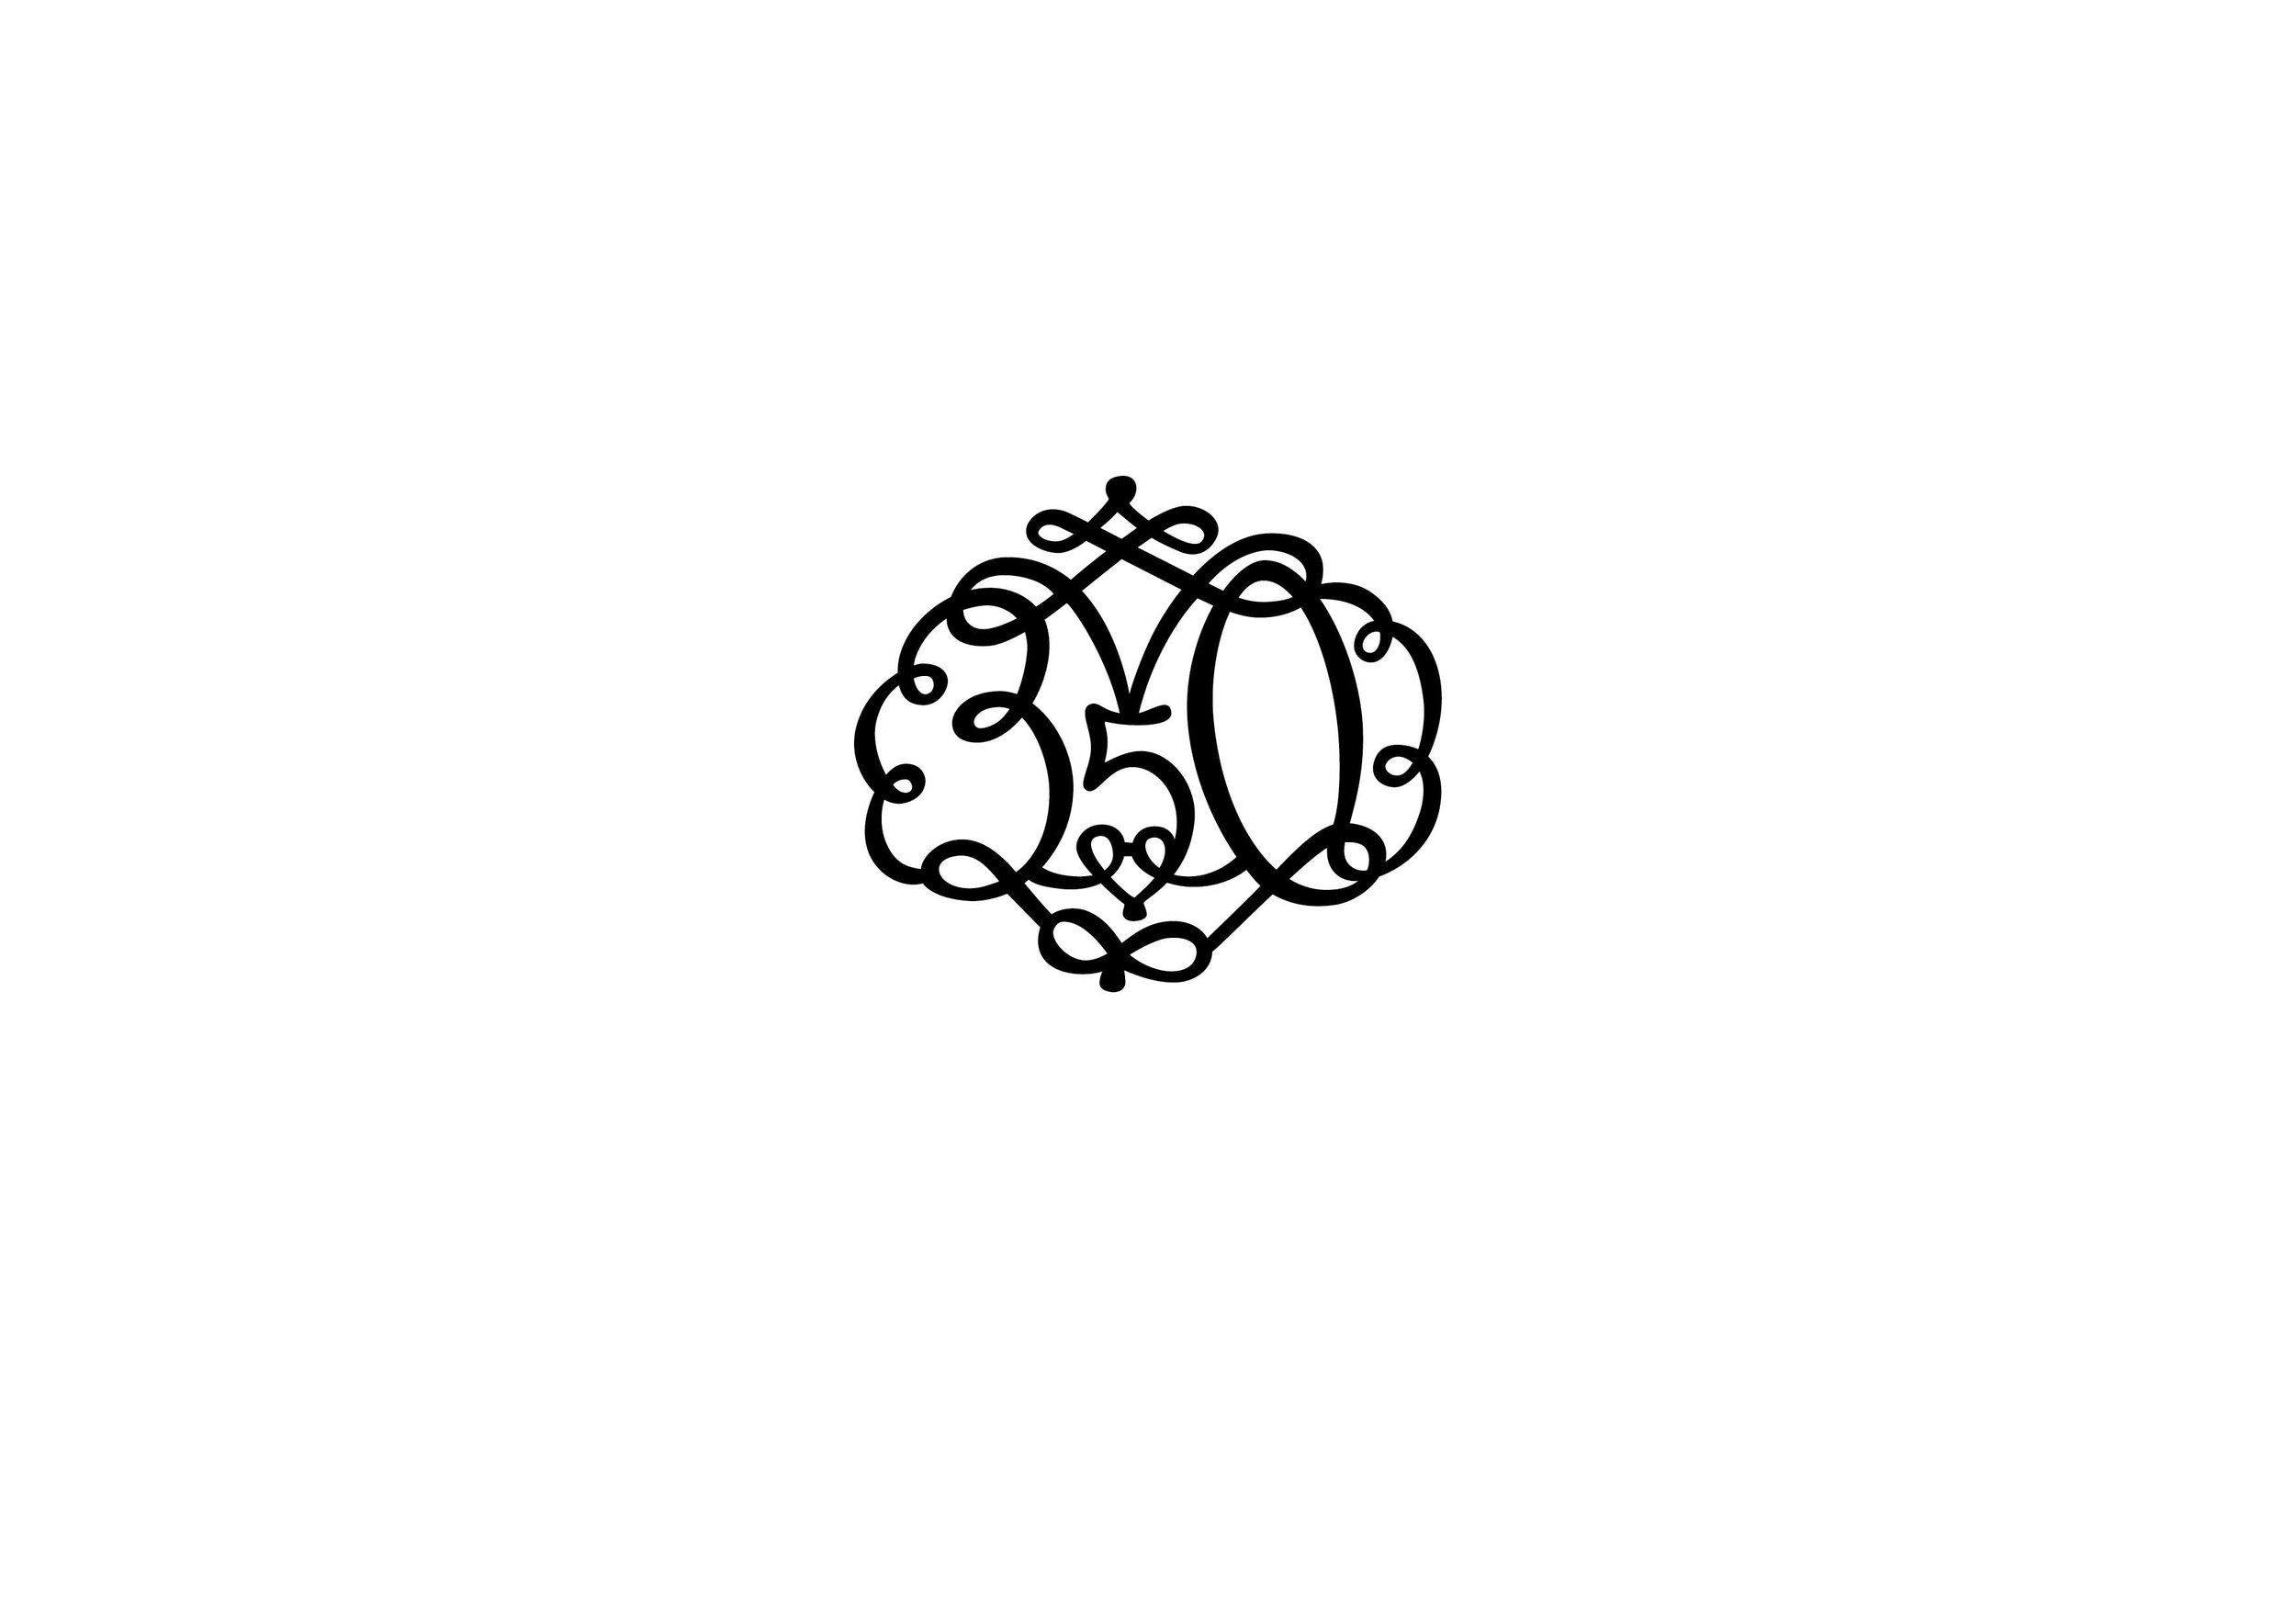 350 years birthday celebration of Árni Magnússon, manuscript collector. Based on this old emblem (see above)(2013)